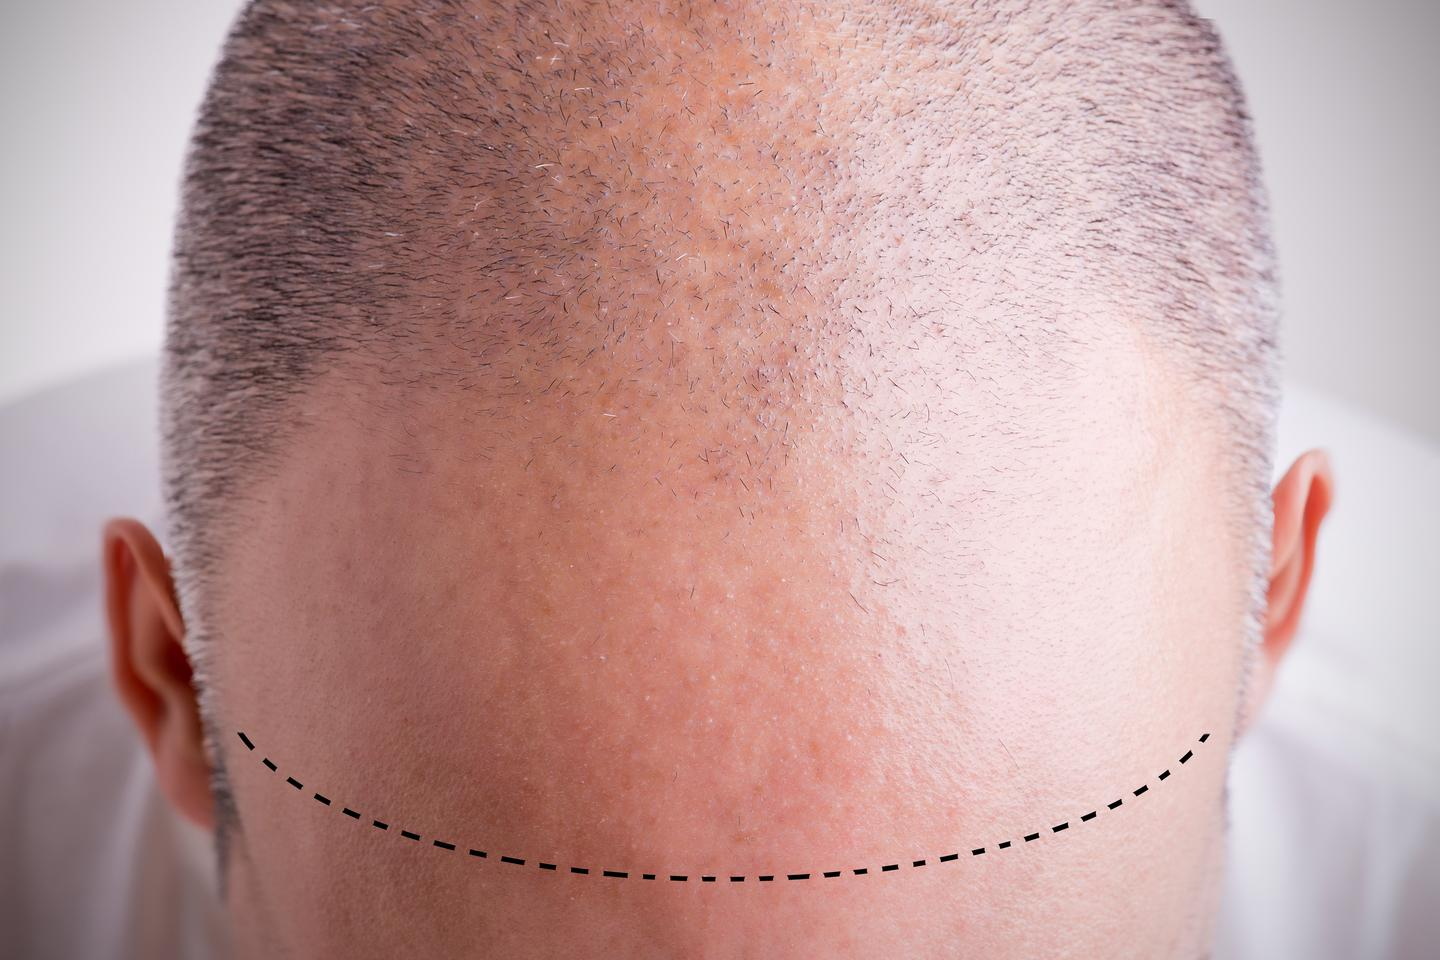 Scientists have uncovered new insights into the machinery behind hair loss in humans